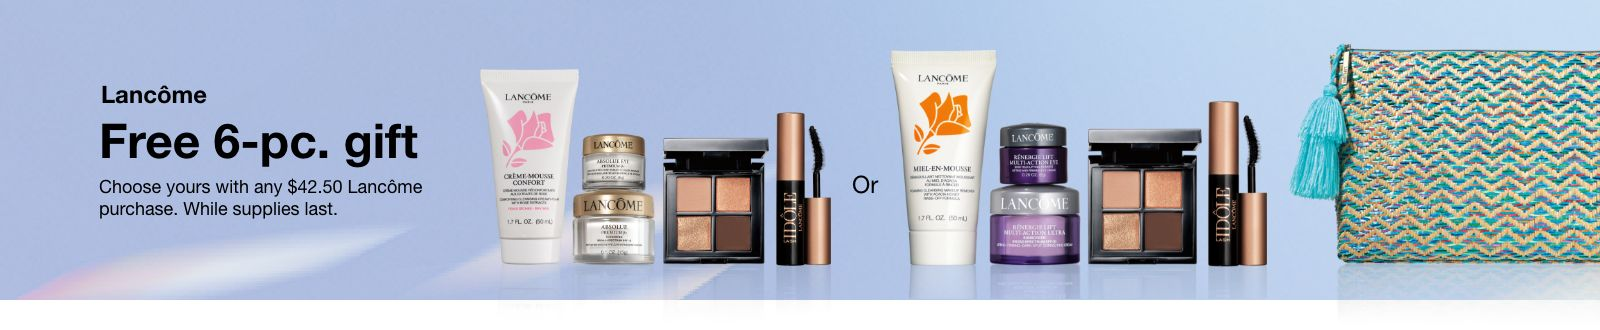 Lancome Free 6-piece gift, Choose yours with any $42.50 Lancome purchase, While supplies last